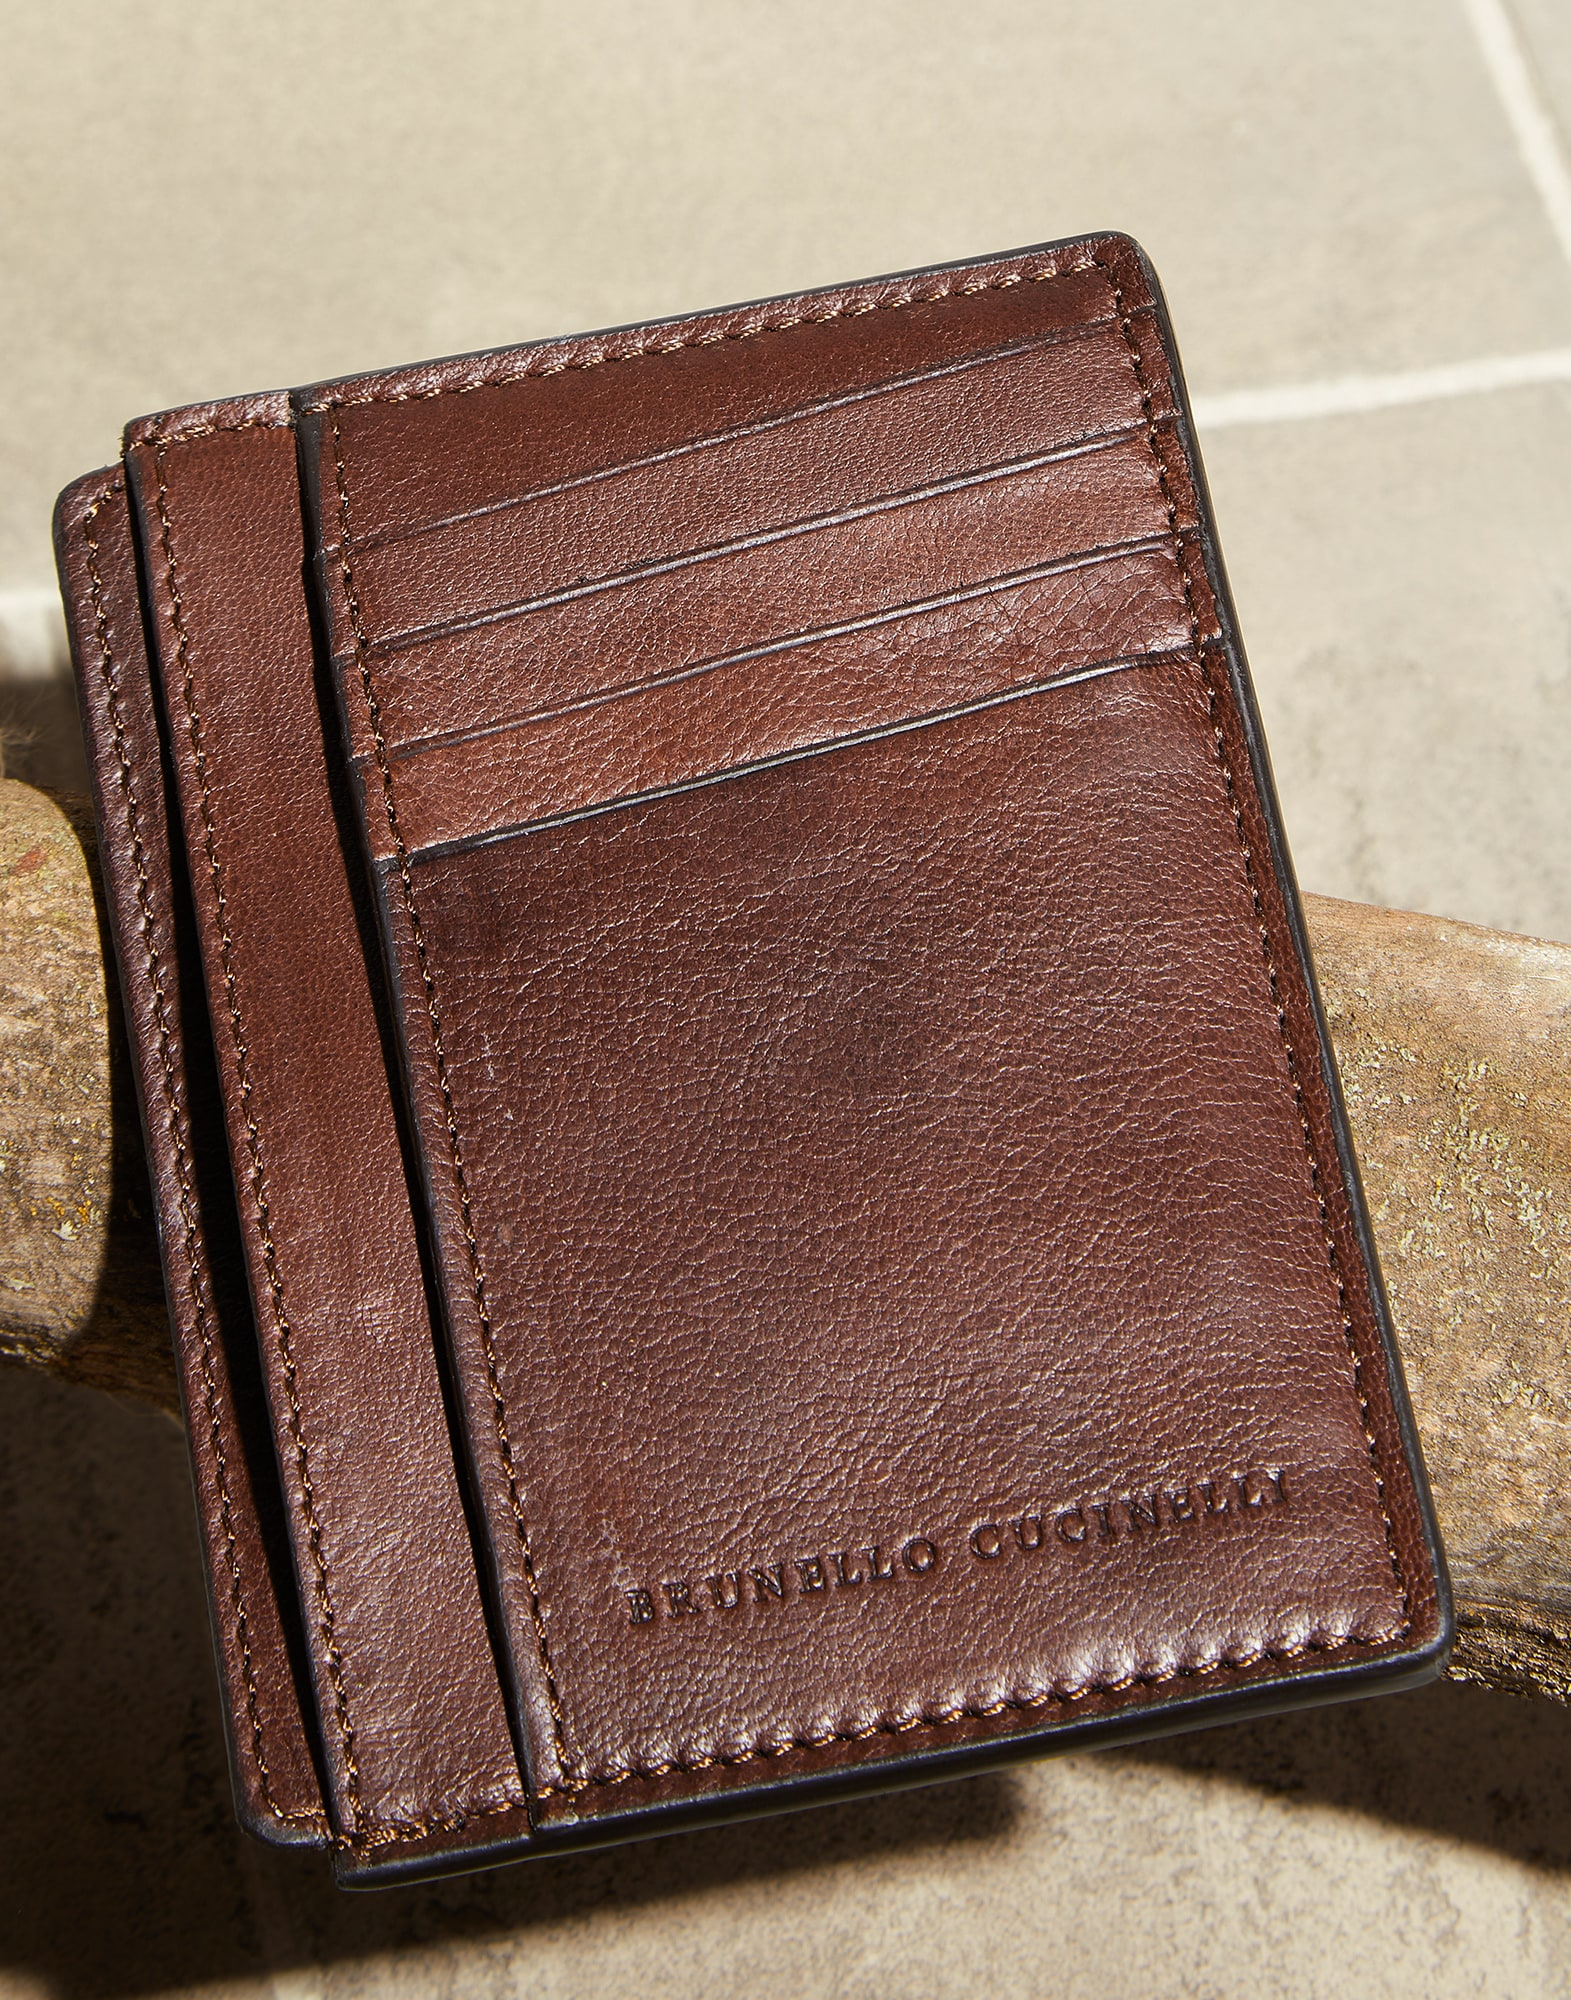 Card Holder - Detail